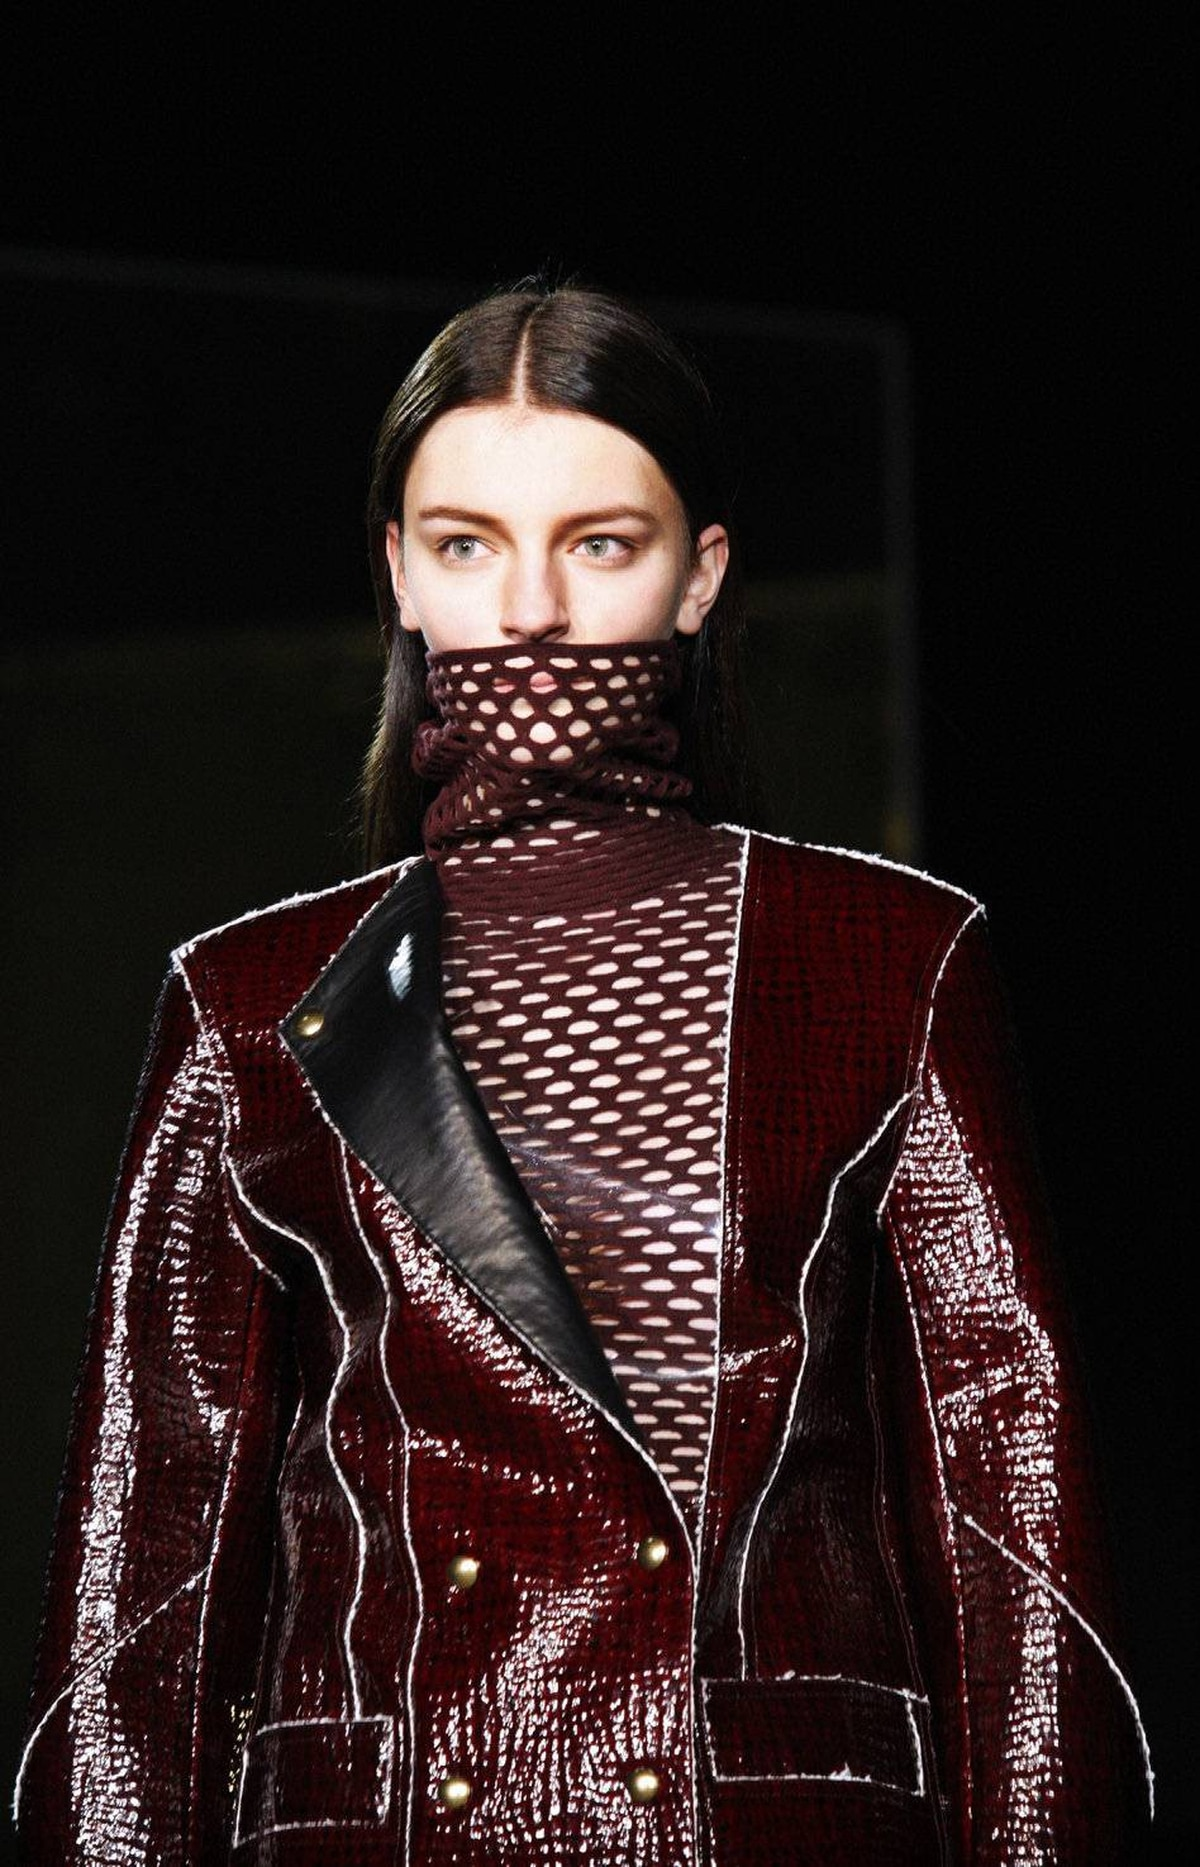 Alexander Wang's ominously tinged show kicked off with models wearing thick mesh masks over their mouths. But mirrored frames, staged at angles throughout a dark warehouse, did little to improve the visibility so fabric details such as this interesting ribbed, lacquered merino wool were difficult to discern.